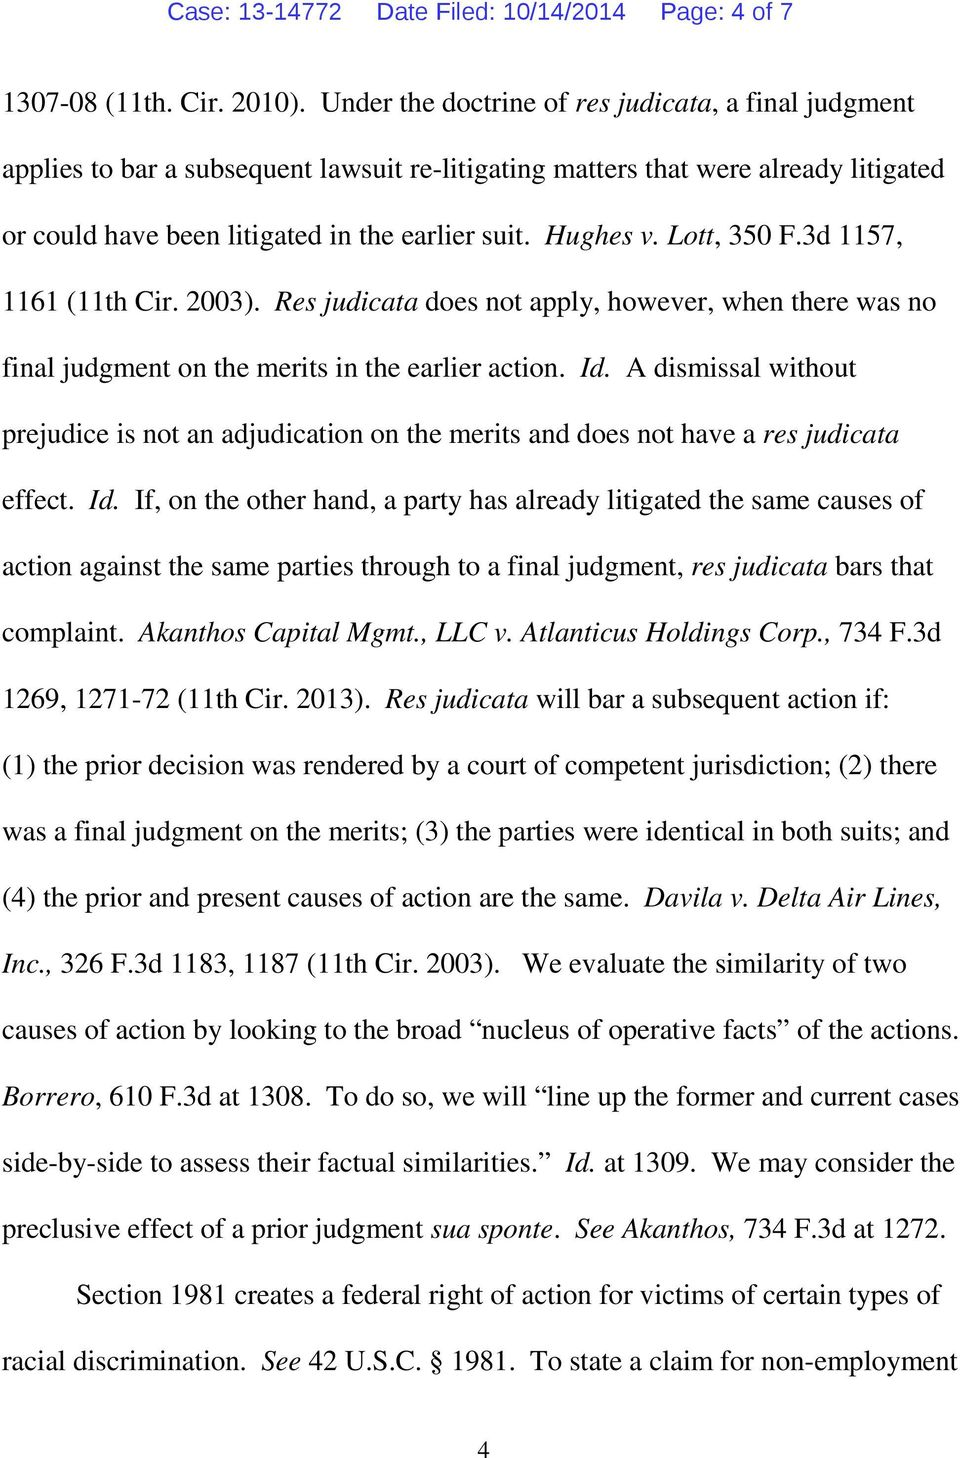 Lott, 350 F.3d 1157, 1161 (11th Cir. 2003). Res judicata does not apply, however, when there was no final judgment on the merits in the earlier action. Id.